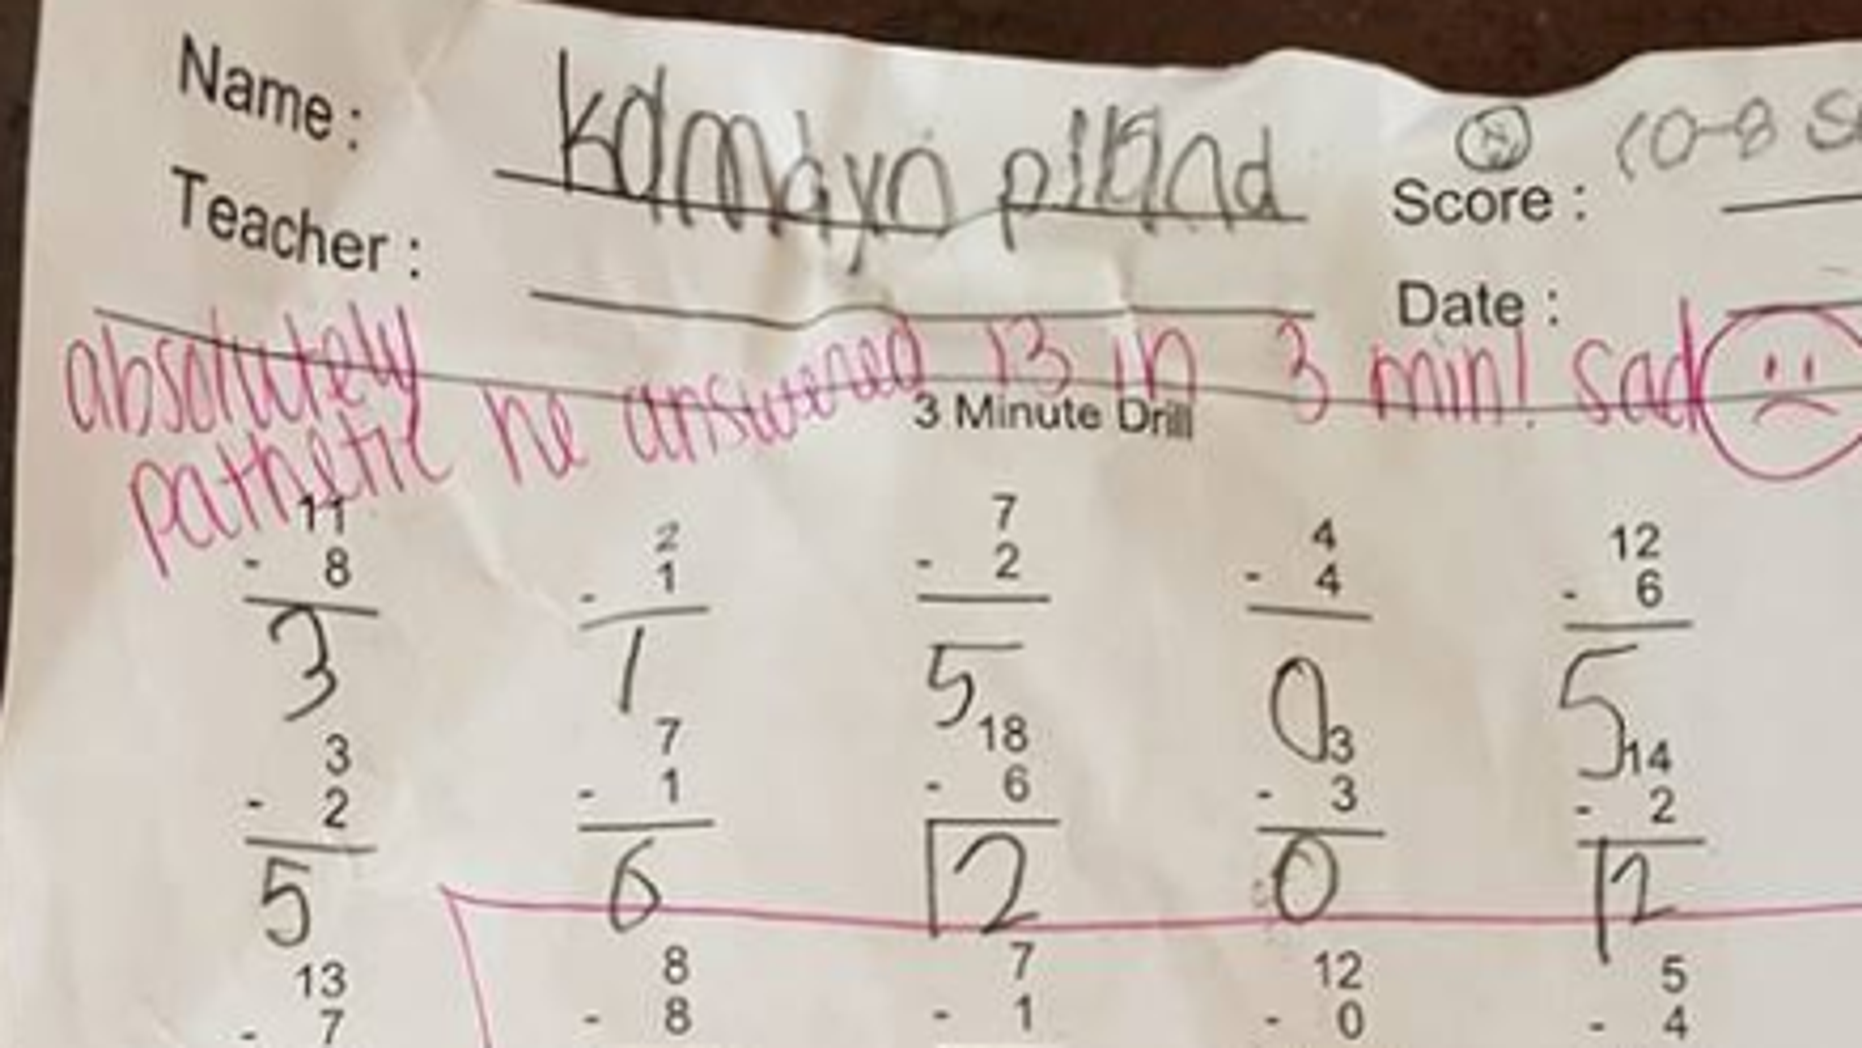 A Pennsylvania father shared an image of his son's math assignment with harsh comments written on top.